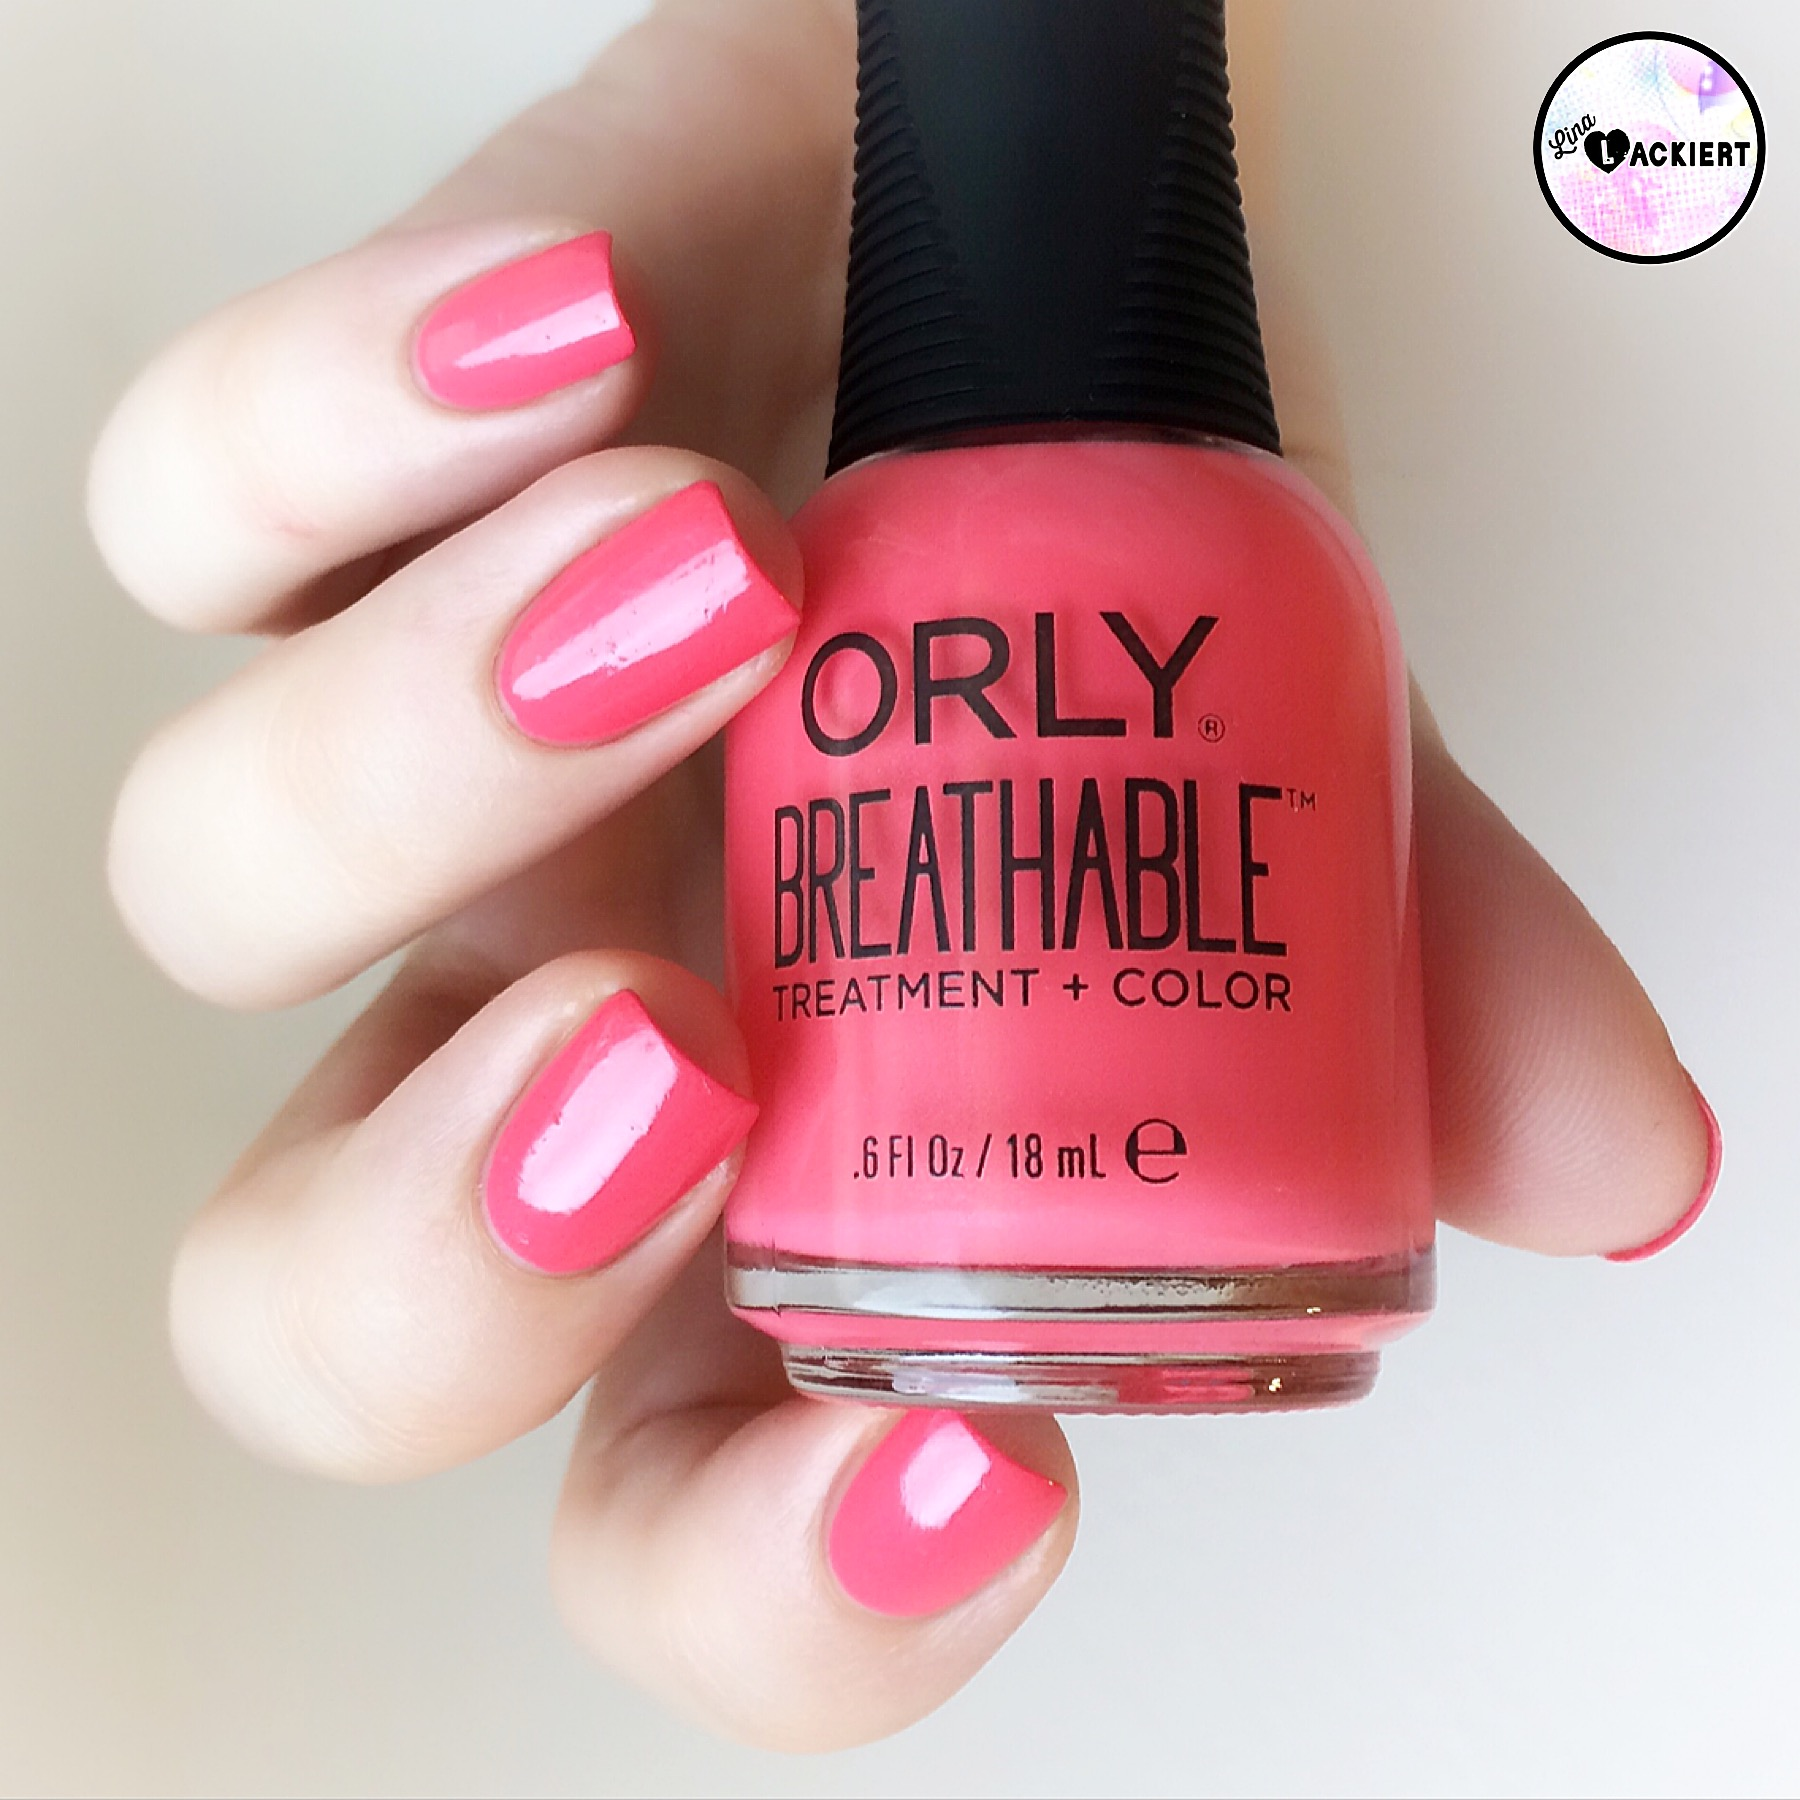 Orly Breathable Nail Superfood Swatches